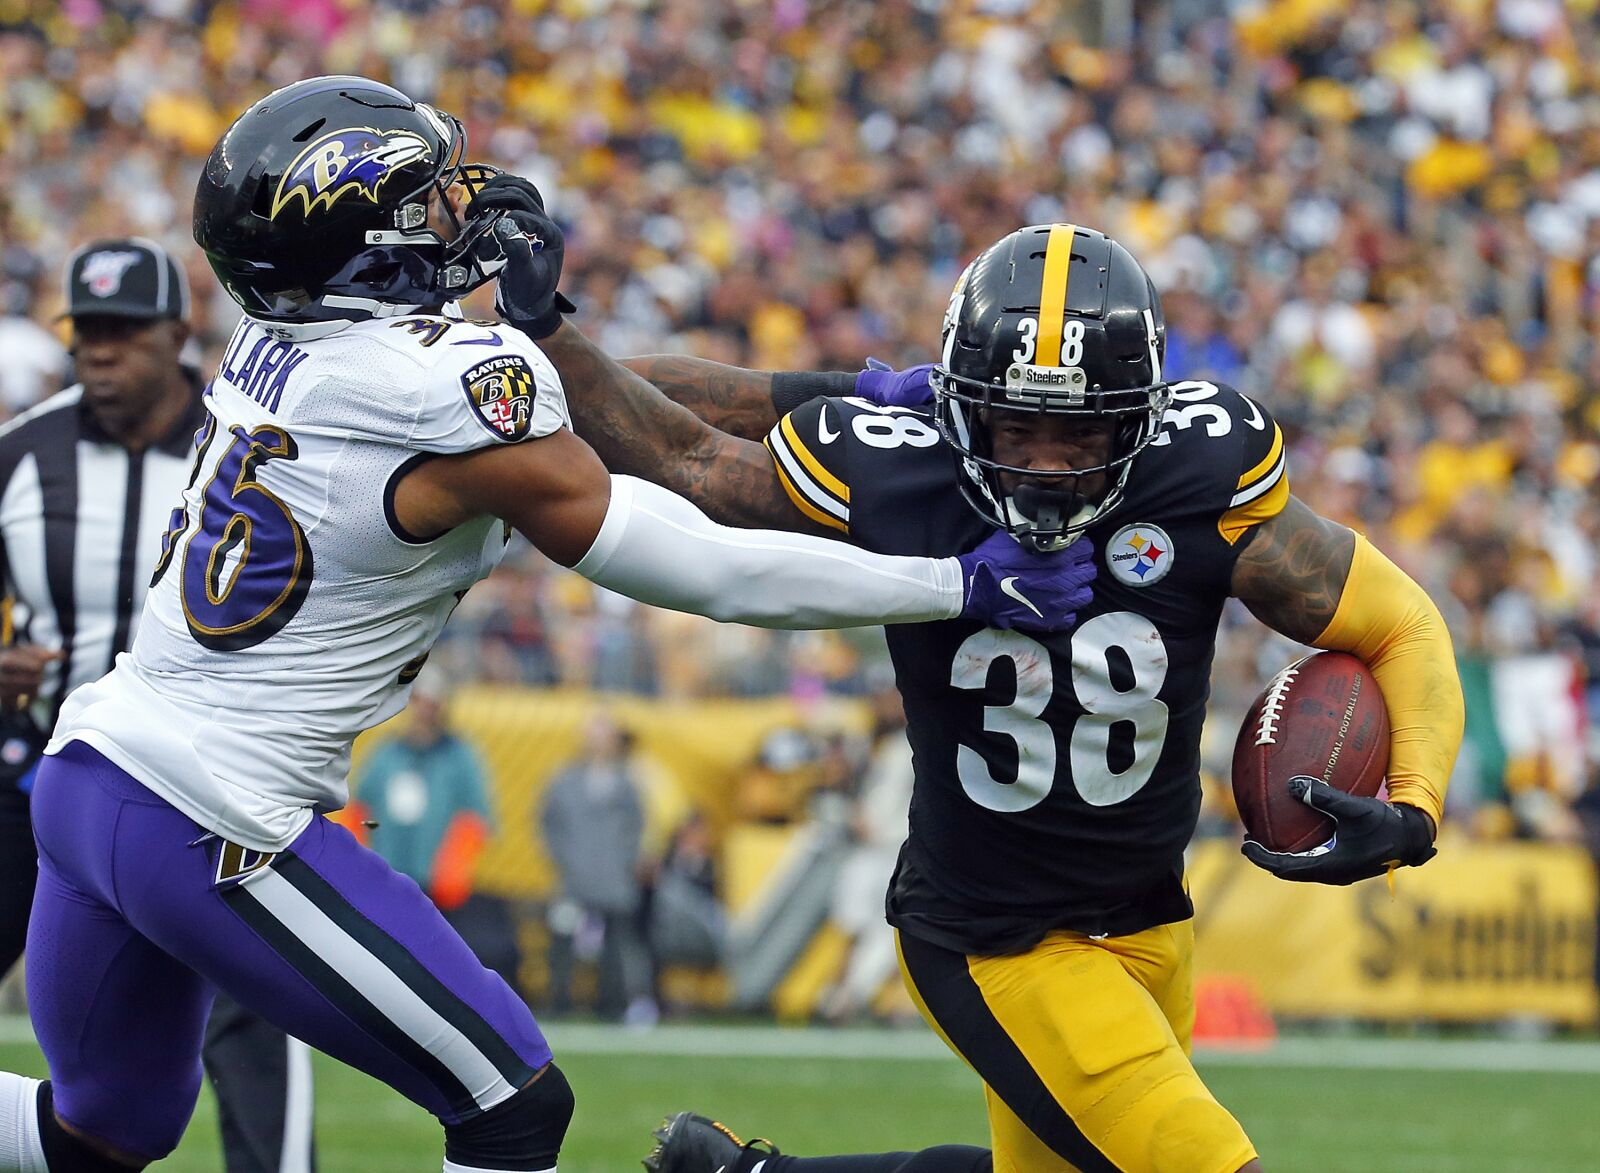 Steelers RB Jaylen Samuels could be the odd man out next season